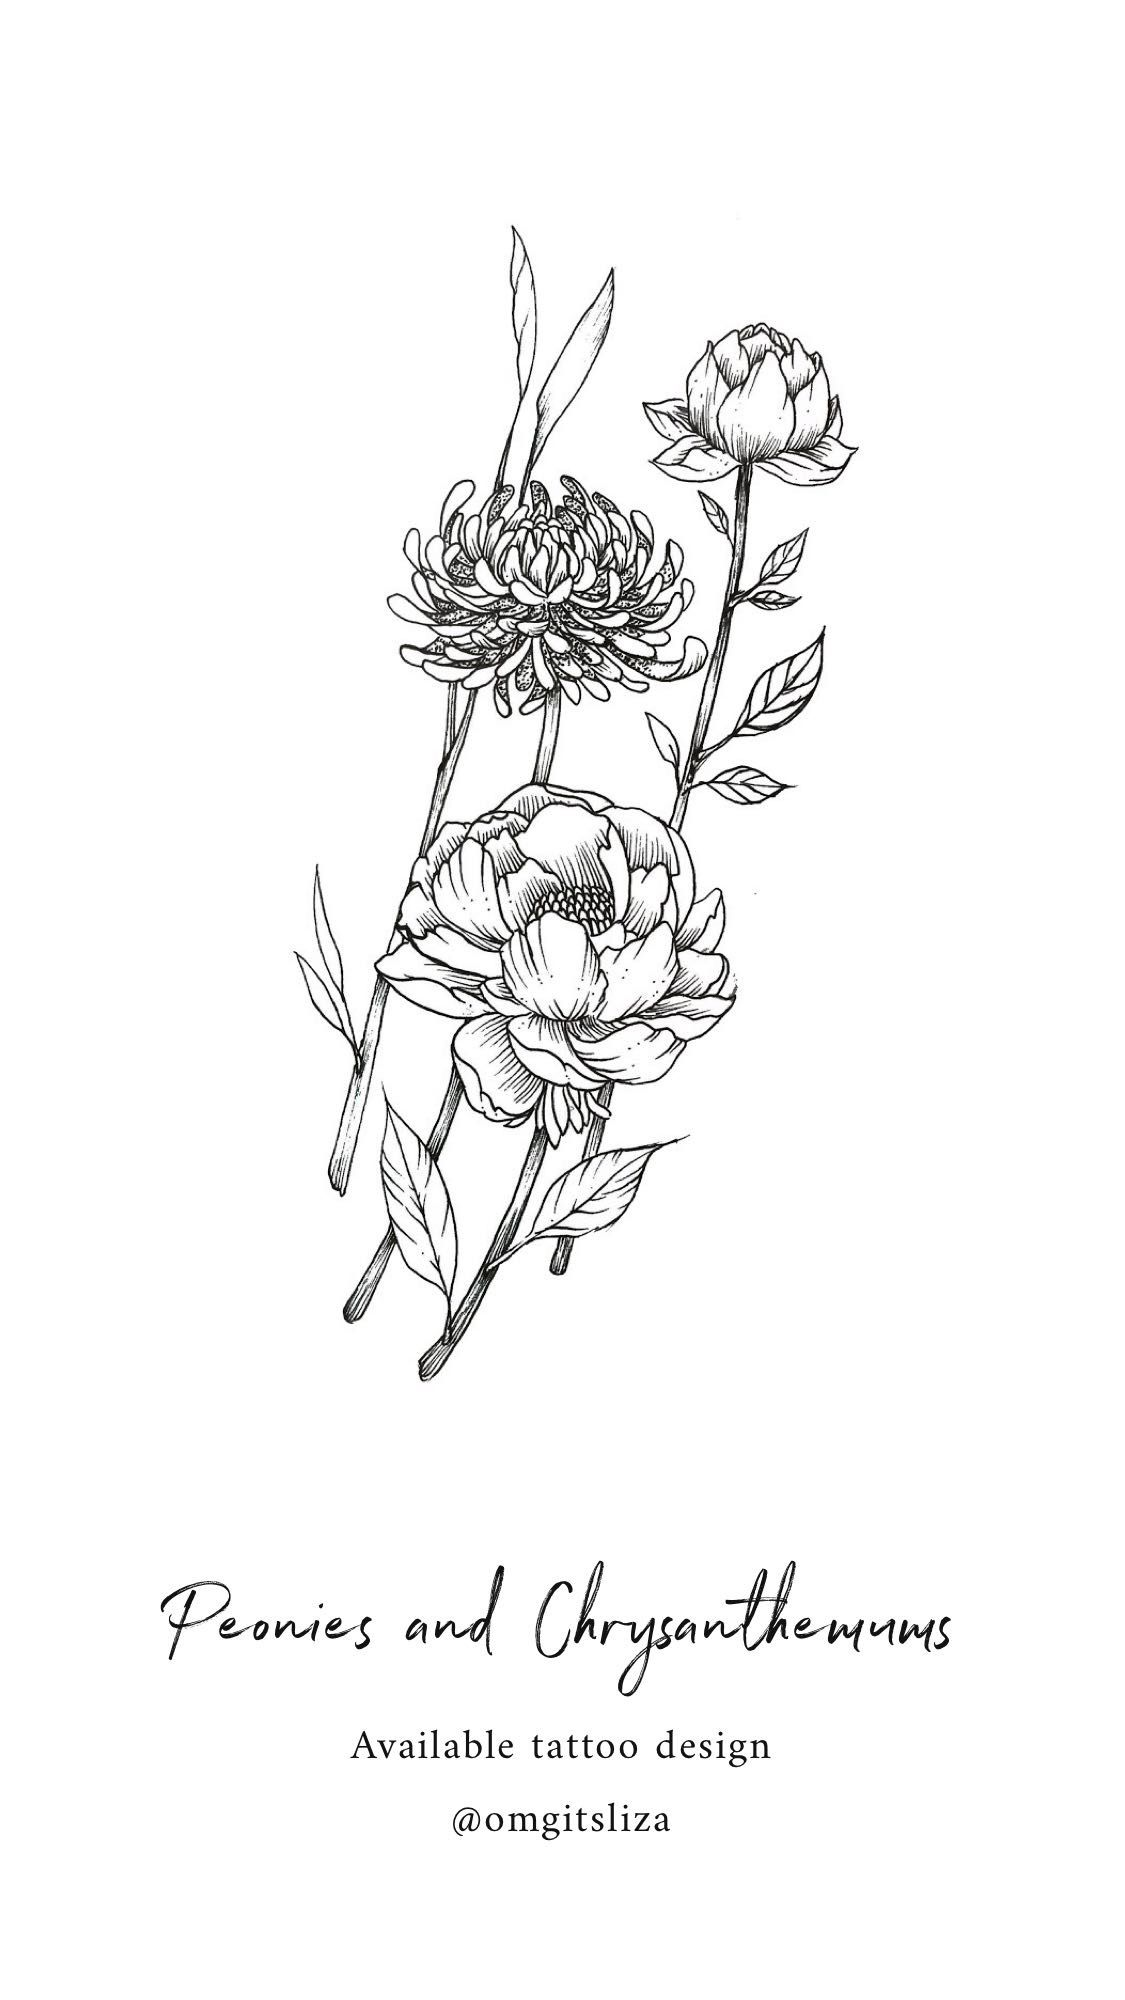 Peonies and Chrysanthemums Tattoo Design Illustration